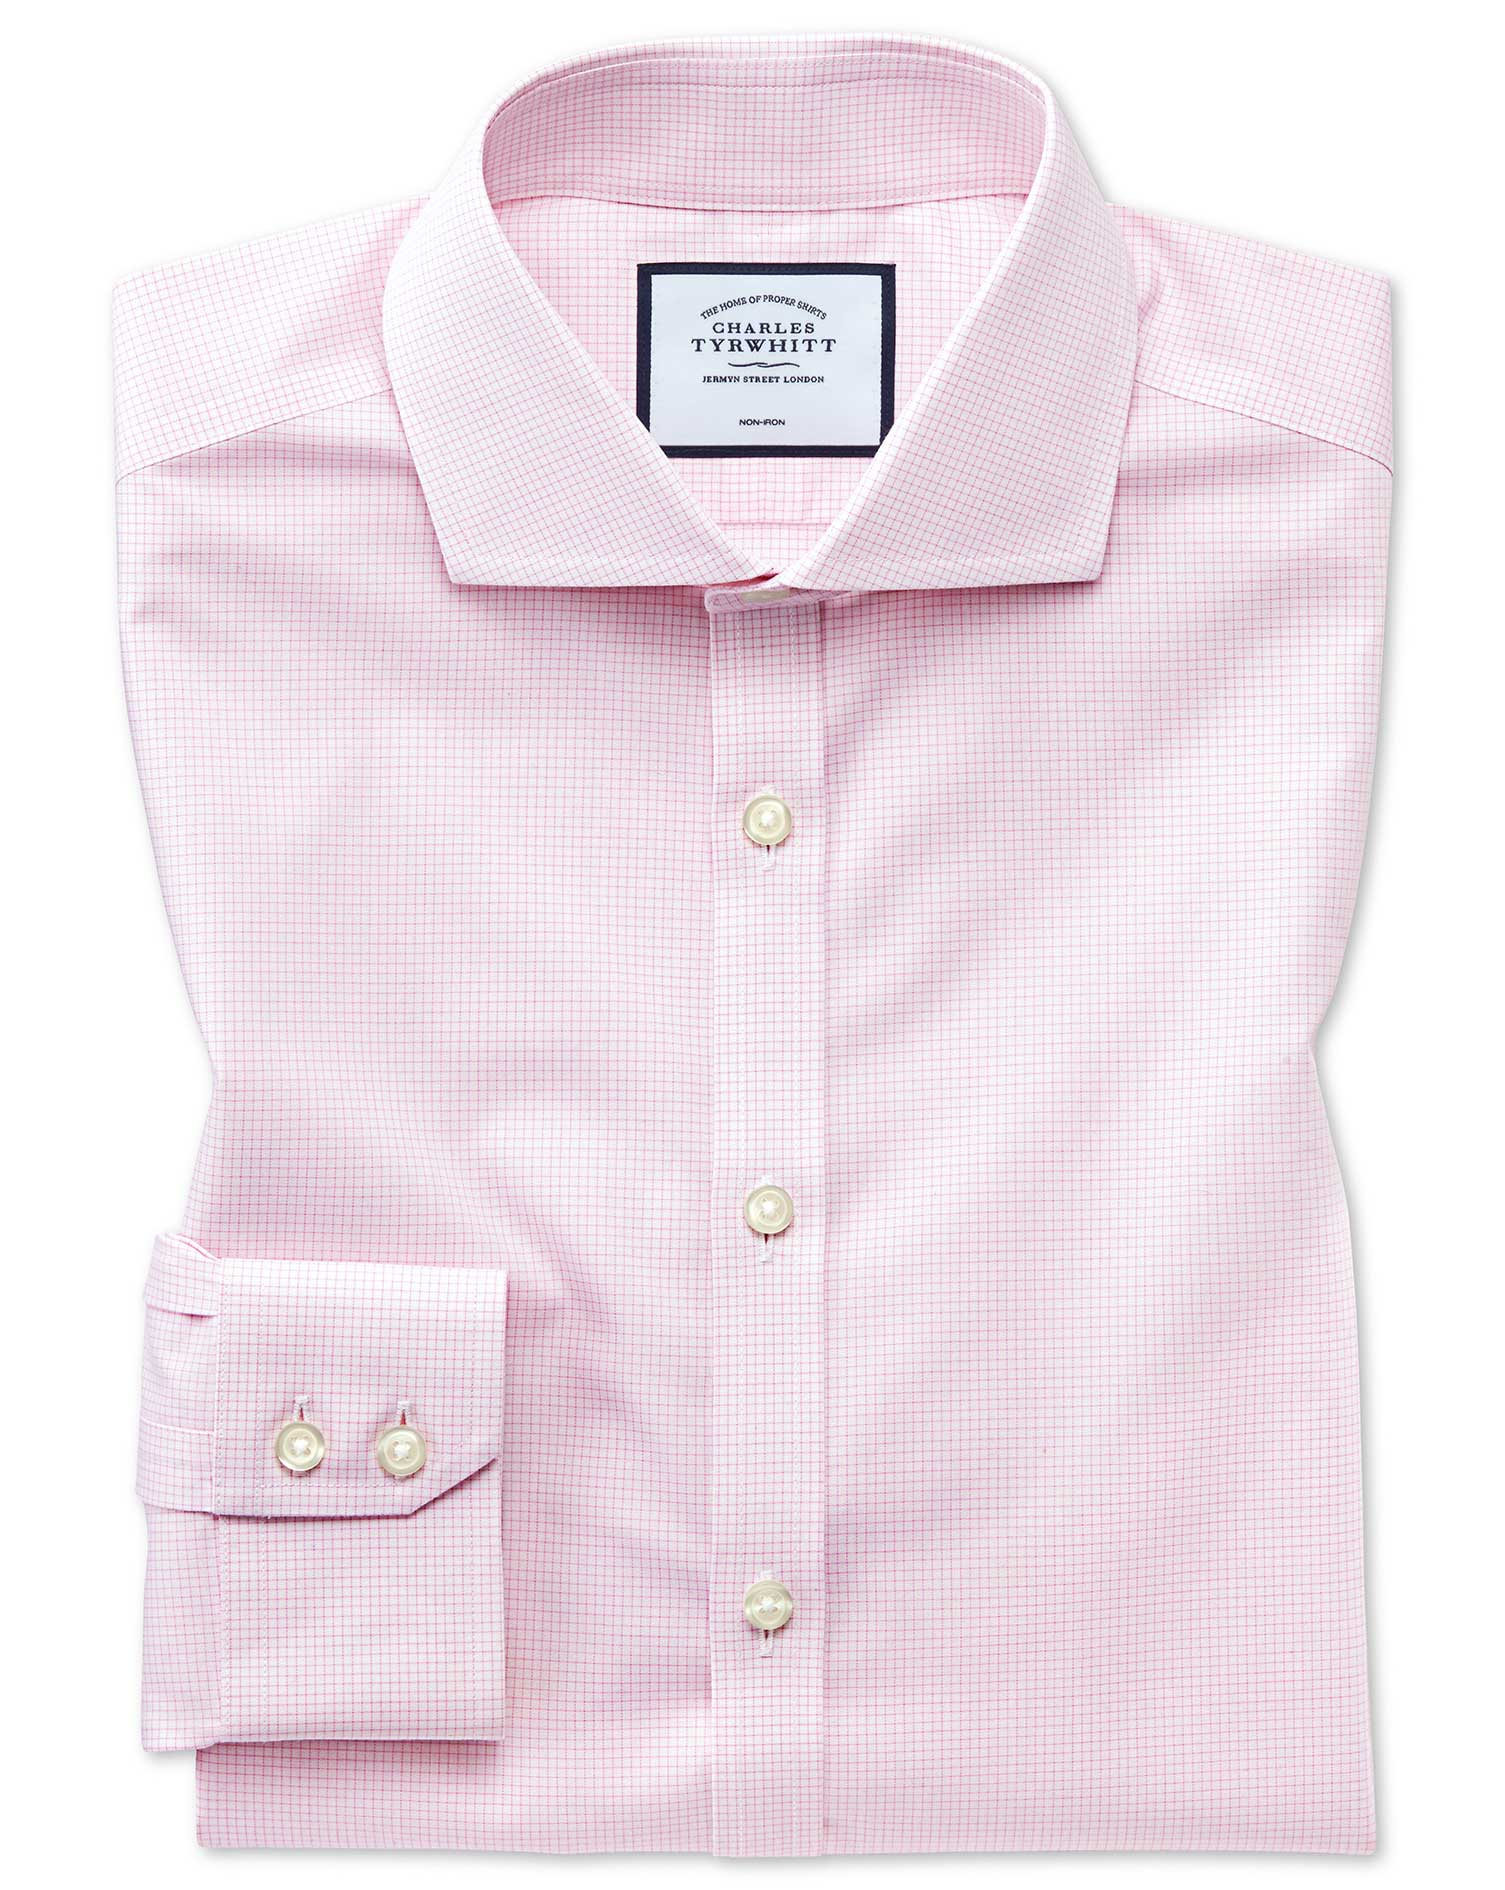 Extra Slim Fit Non-Iron 4-Way Stretch Pink Check Cotton Formal Shirt Single Cuff Size 15/33 by Charl